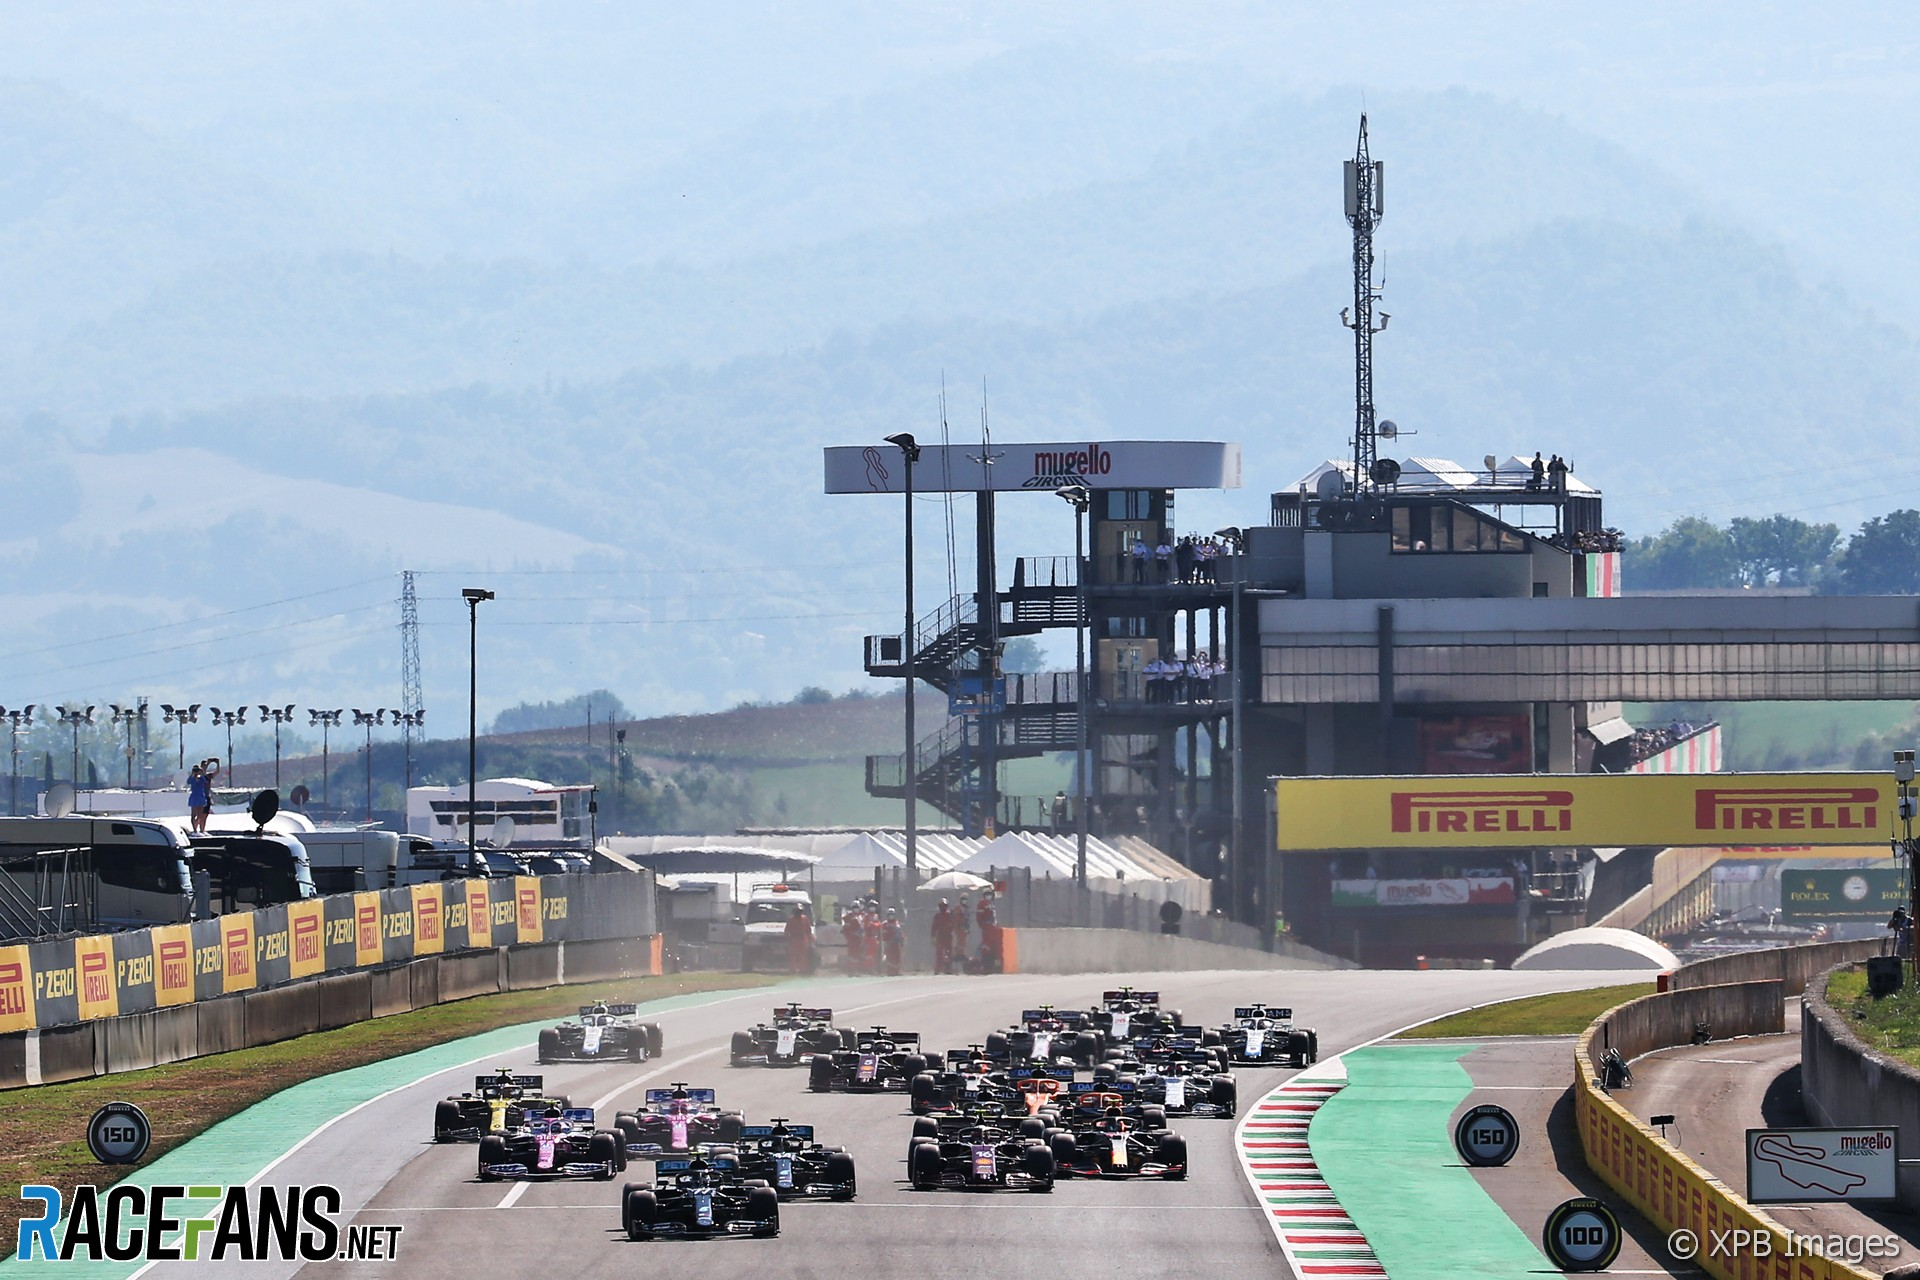 2021 F1 calendar: Which new races are likely to return? · RaceFans